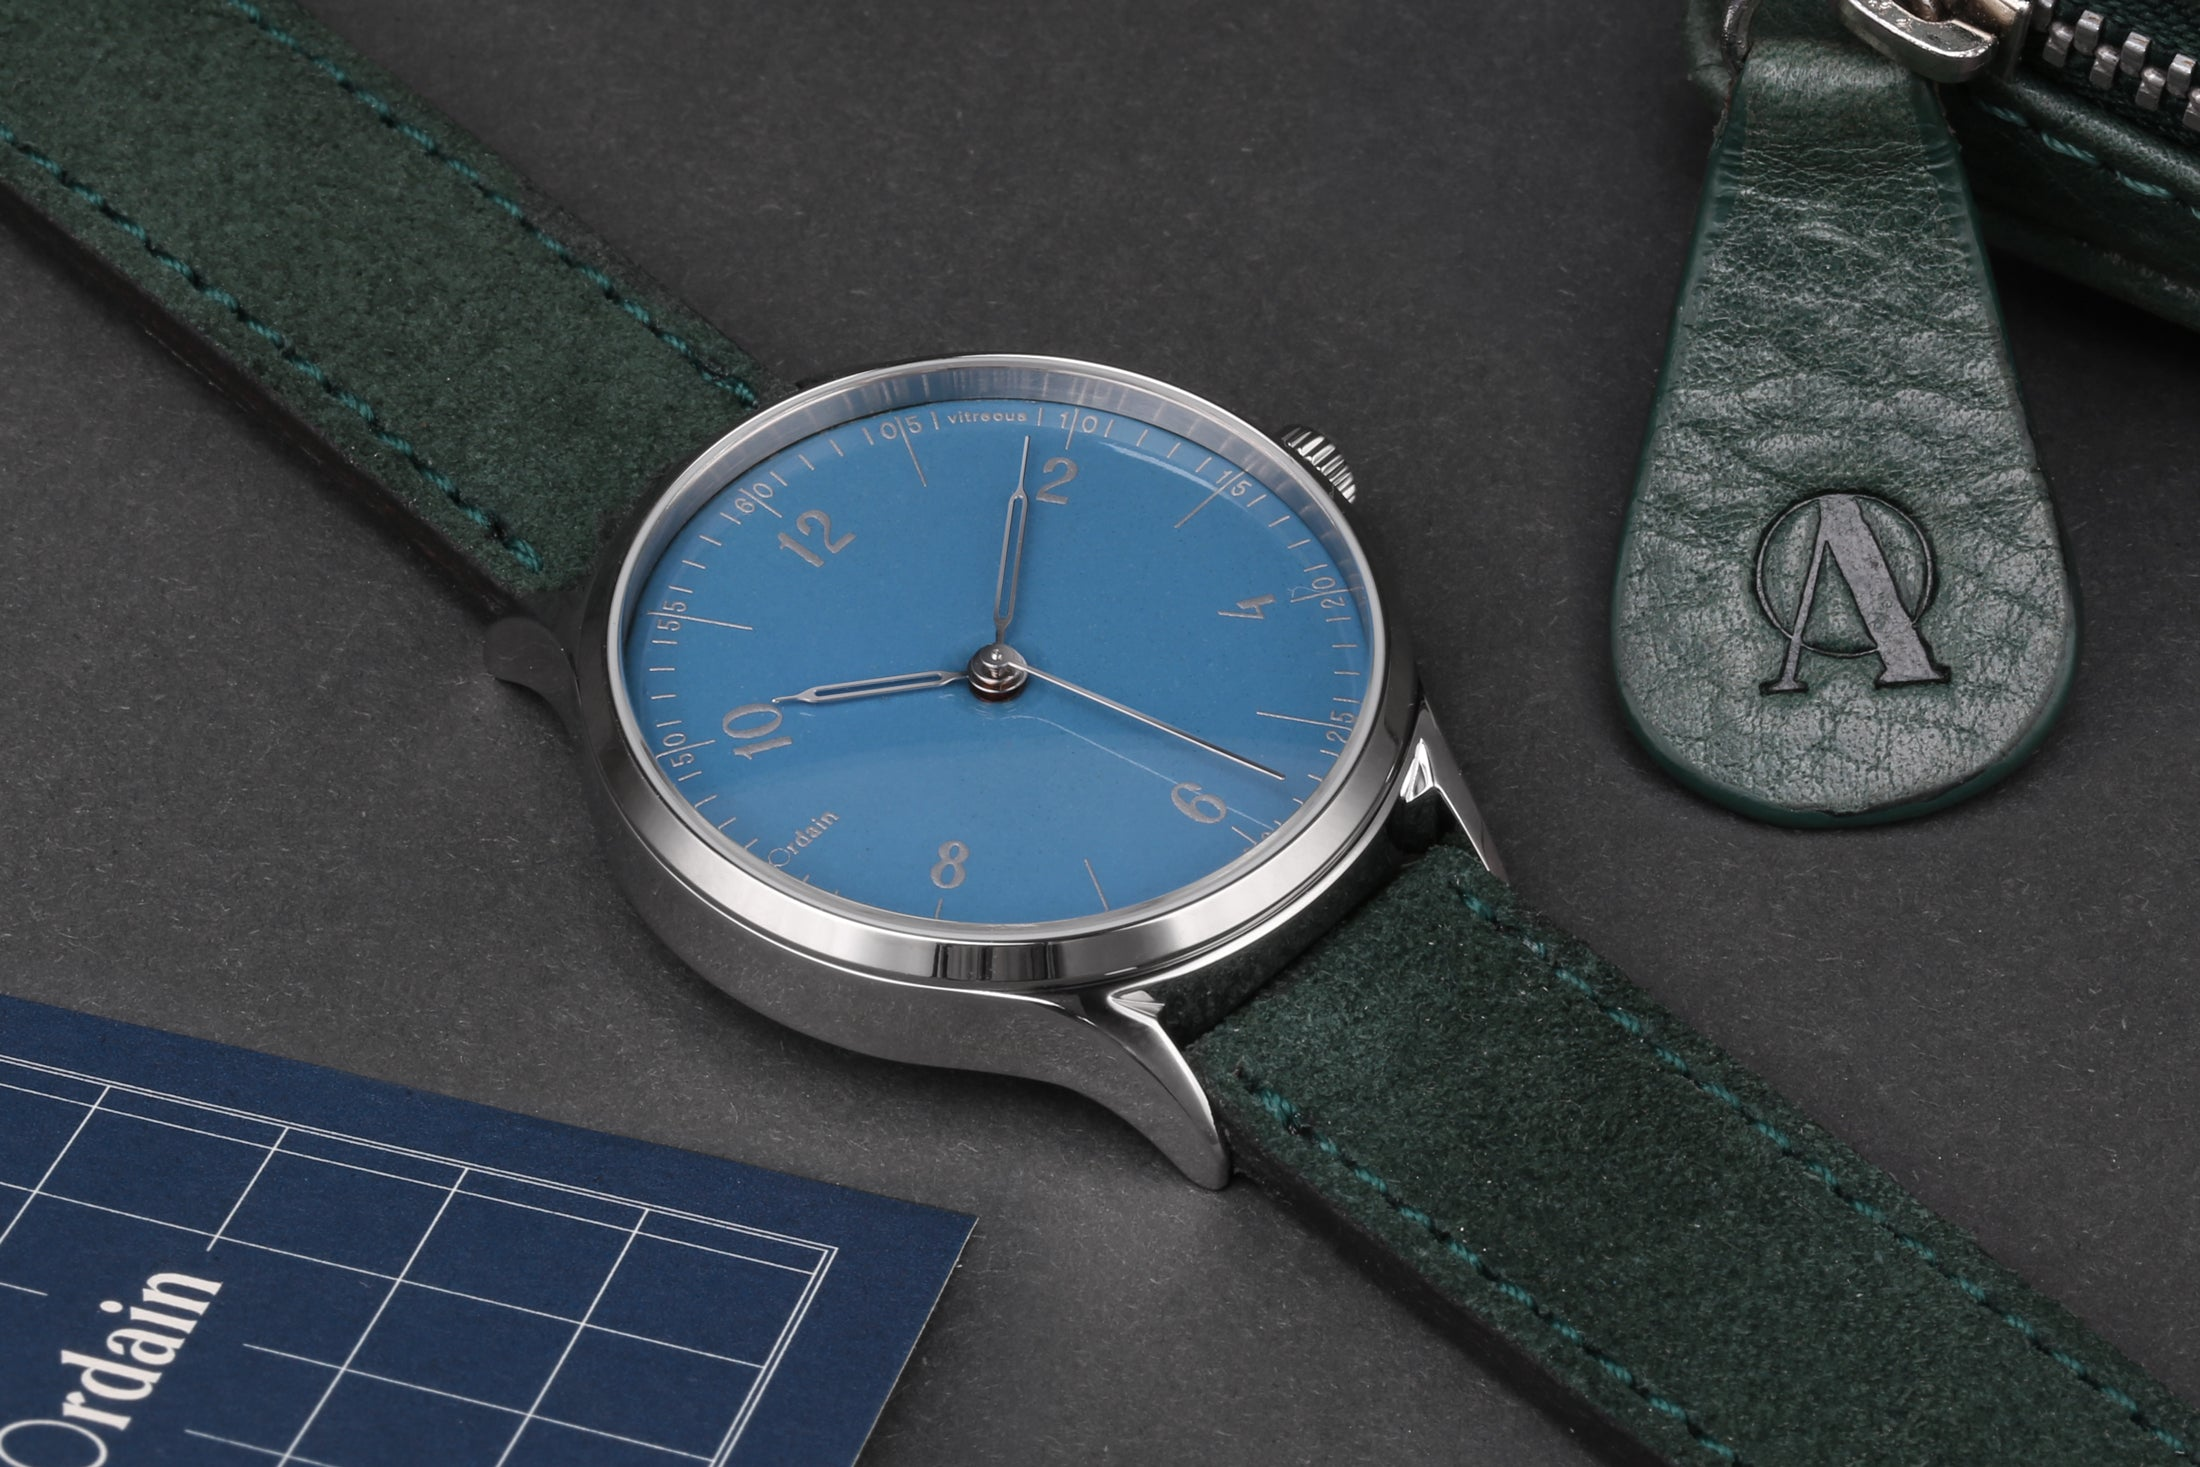 anOrdain Model 1 with Hebridean Blue dial